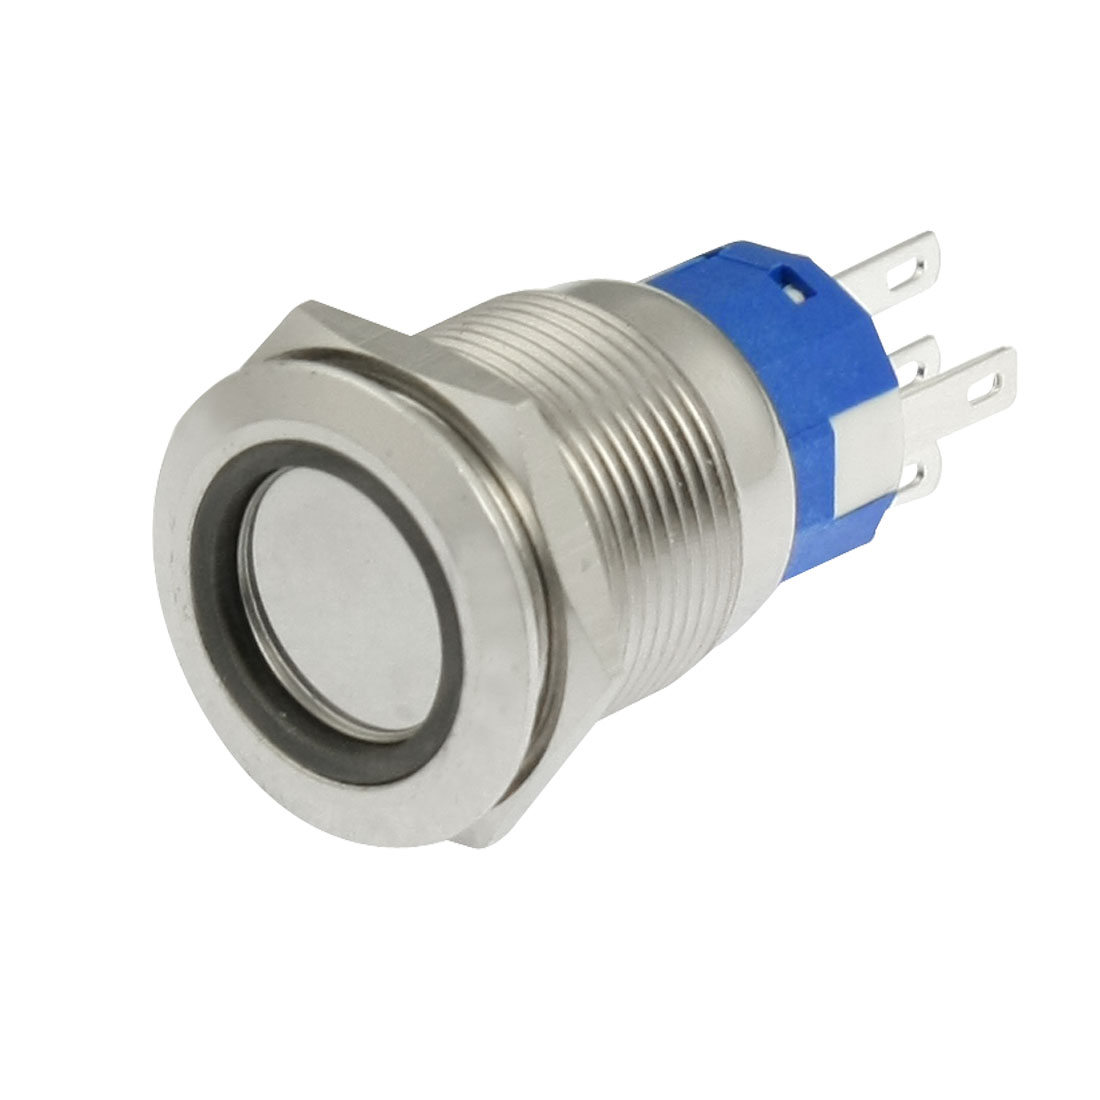 DC 24V Blue LED Illuminated 19mm Stainless Steel Latching Push Button Switch